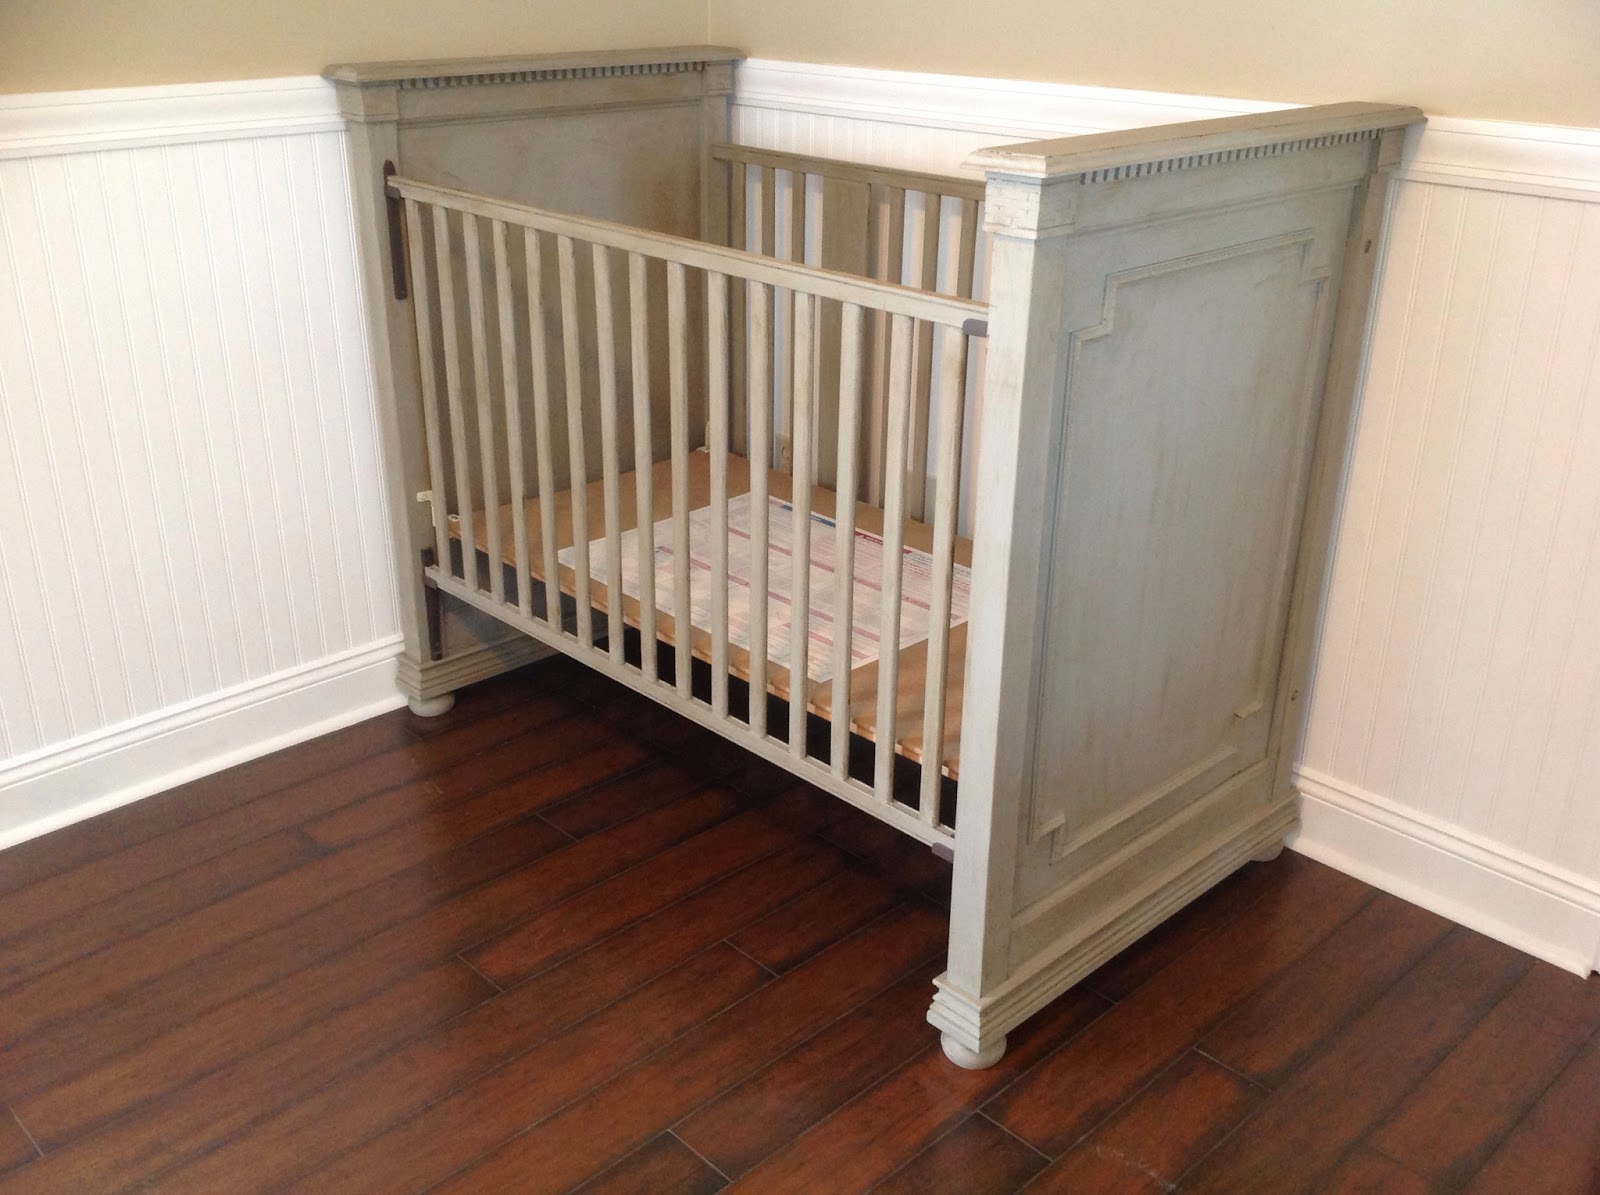 Round Crib Restoration Hardware | Inexpensive Cribs | Restoration Hardware Cribs